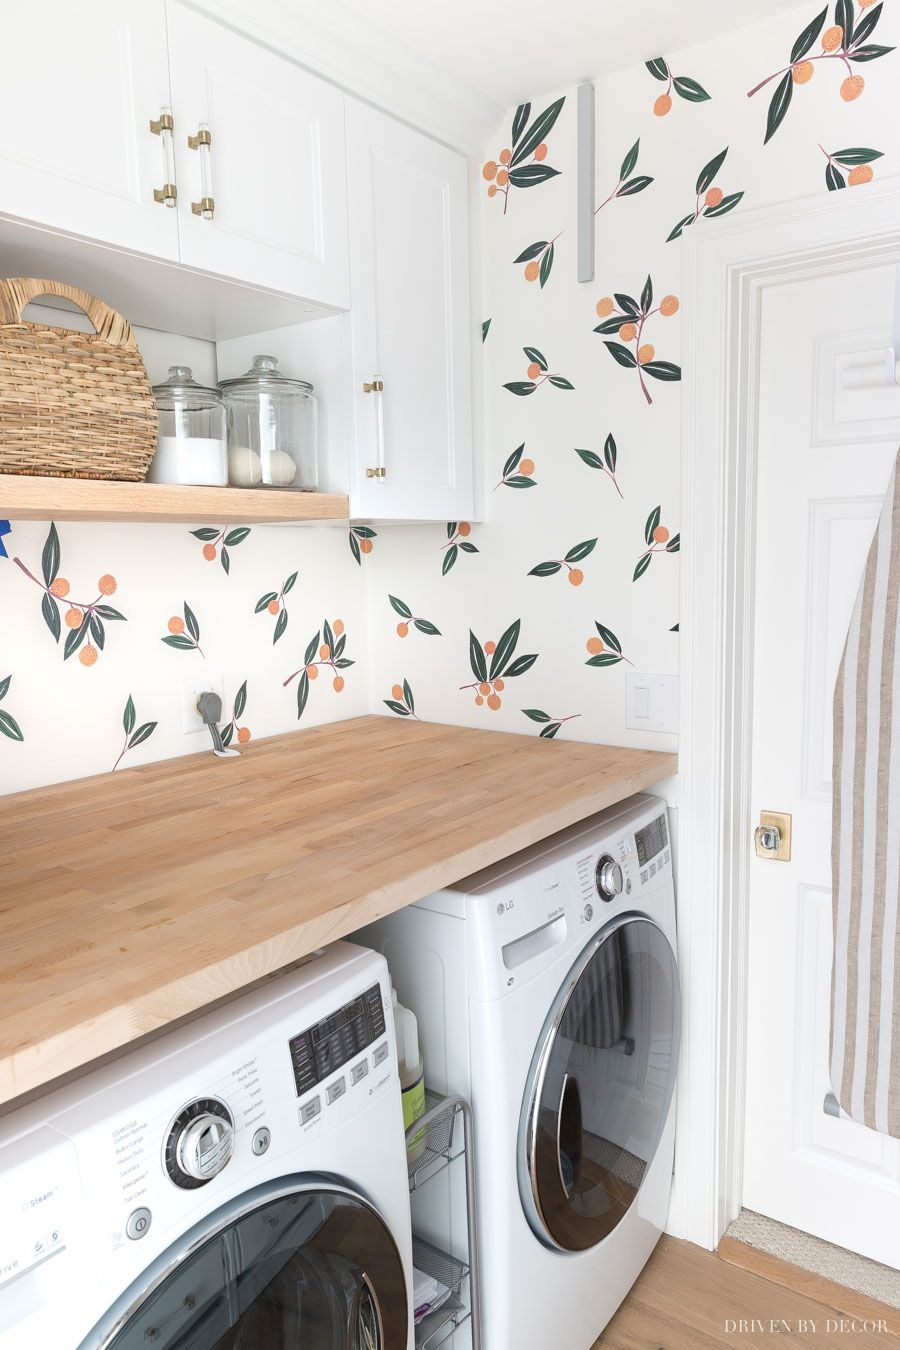 Laundry Room Decals That Make It The Cutest Room in the House!